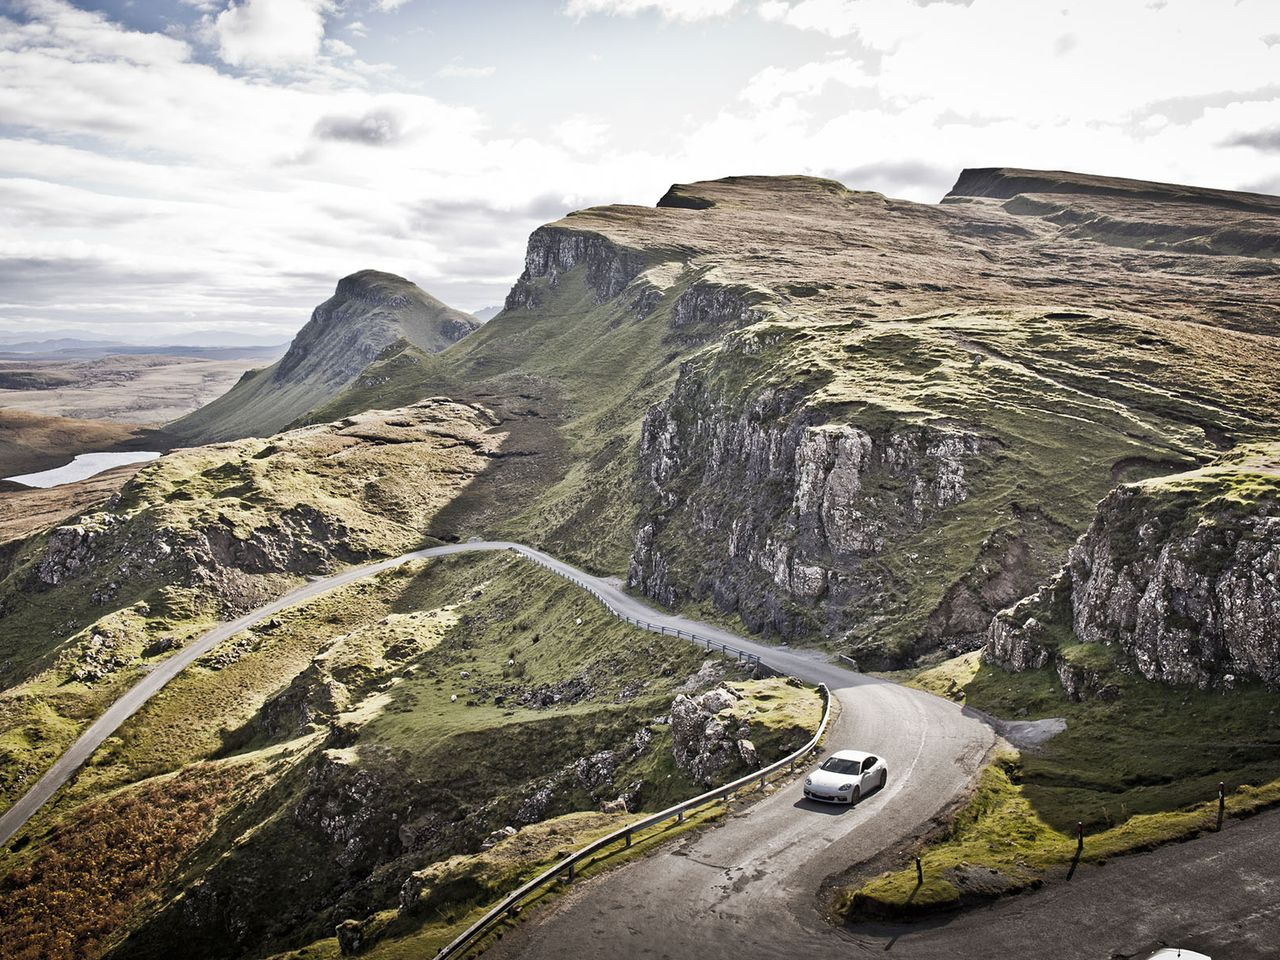 The Quiraing Pass road leads through fabulous scenery.